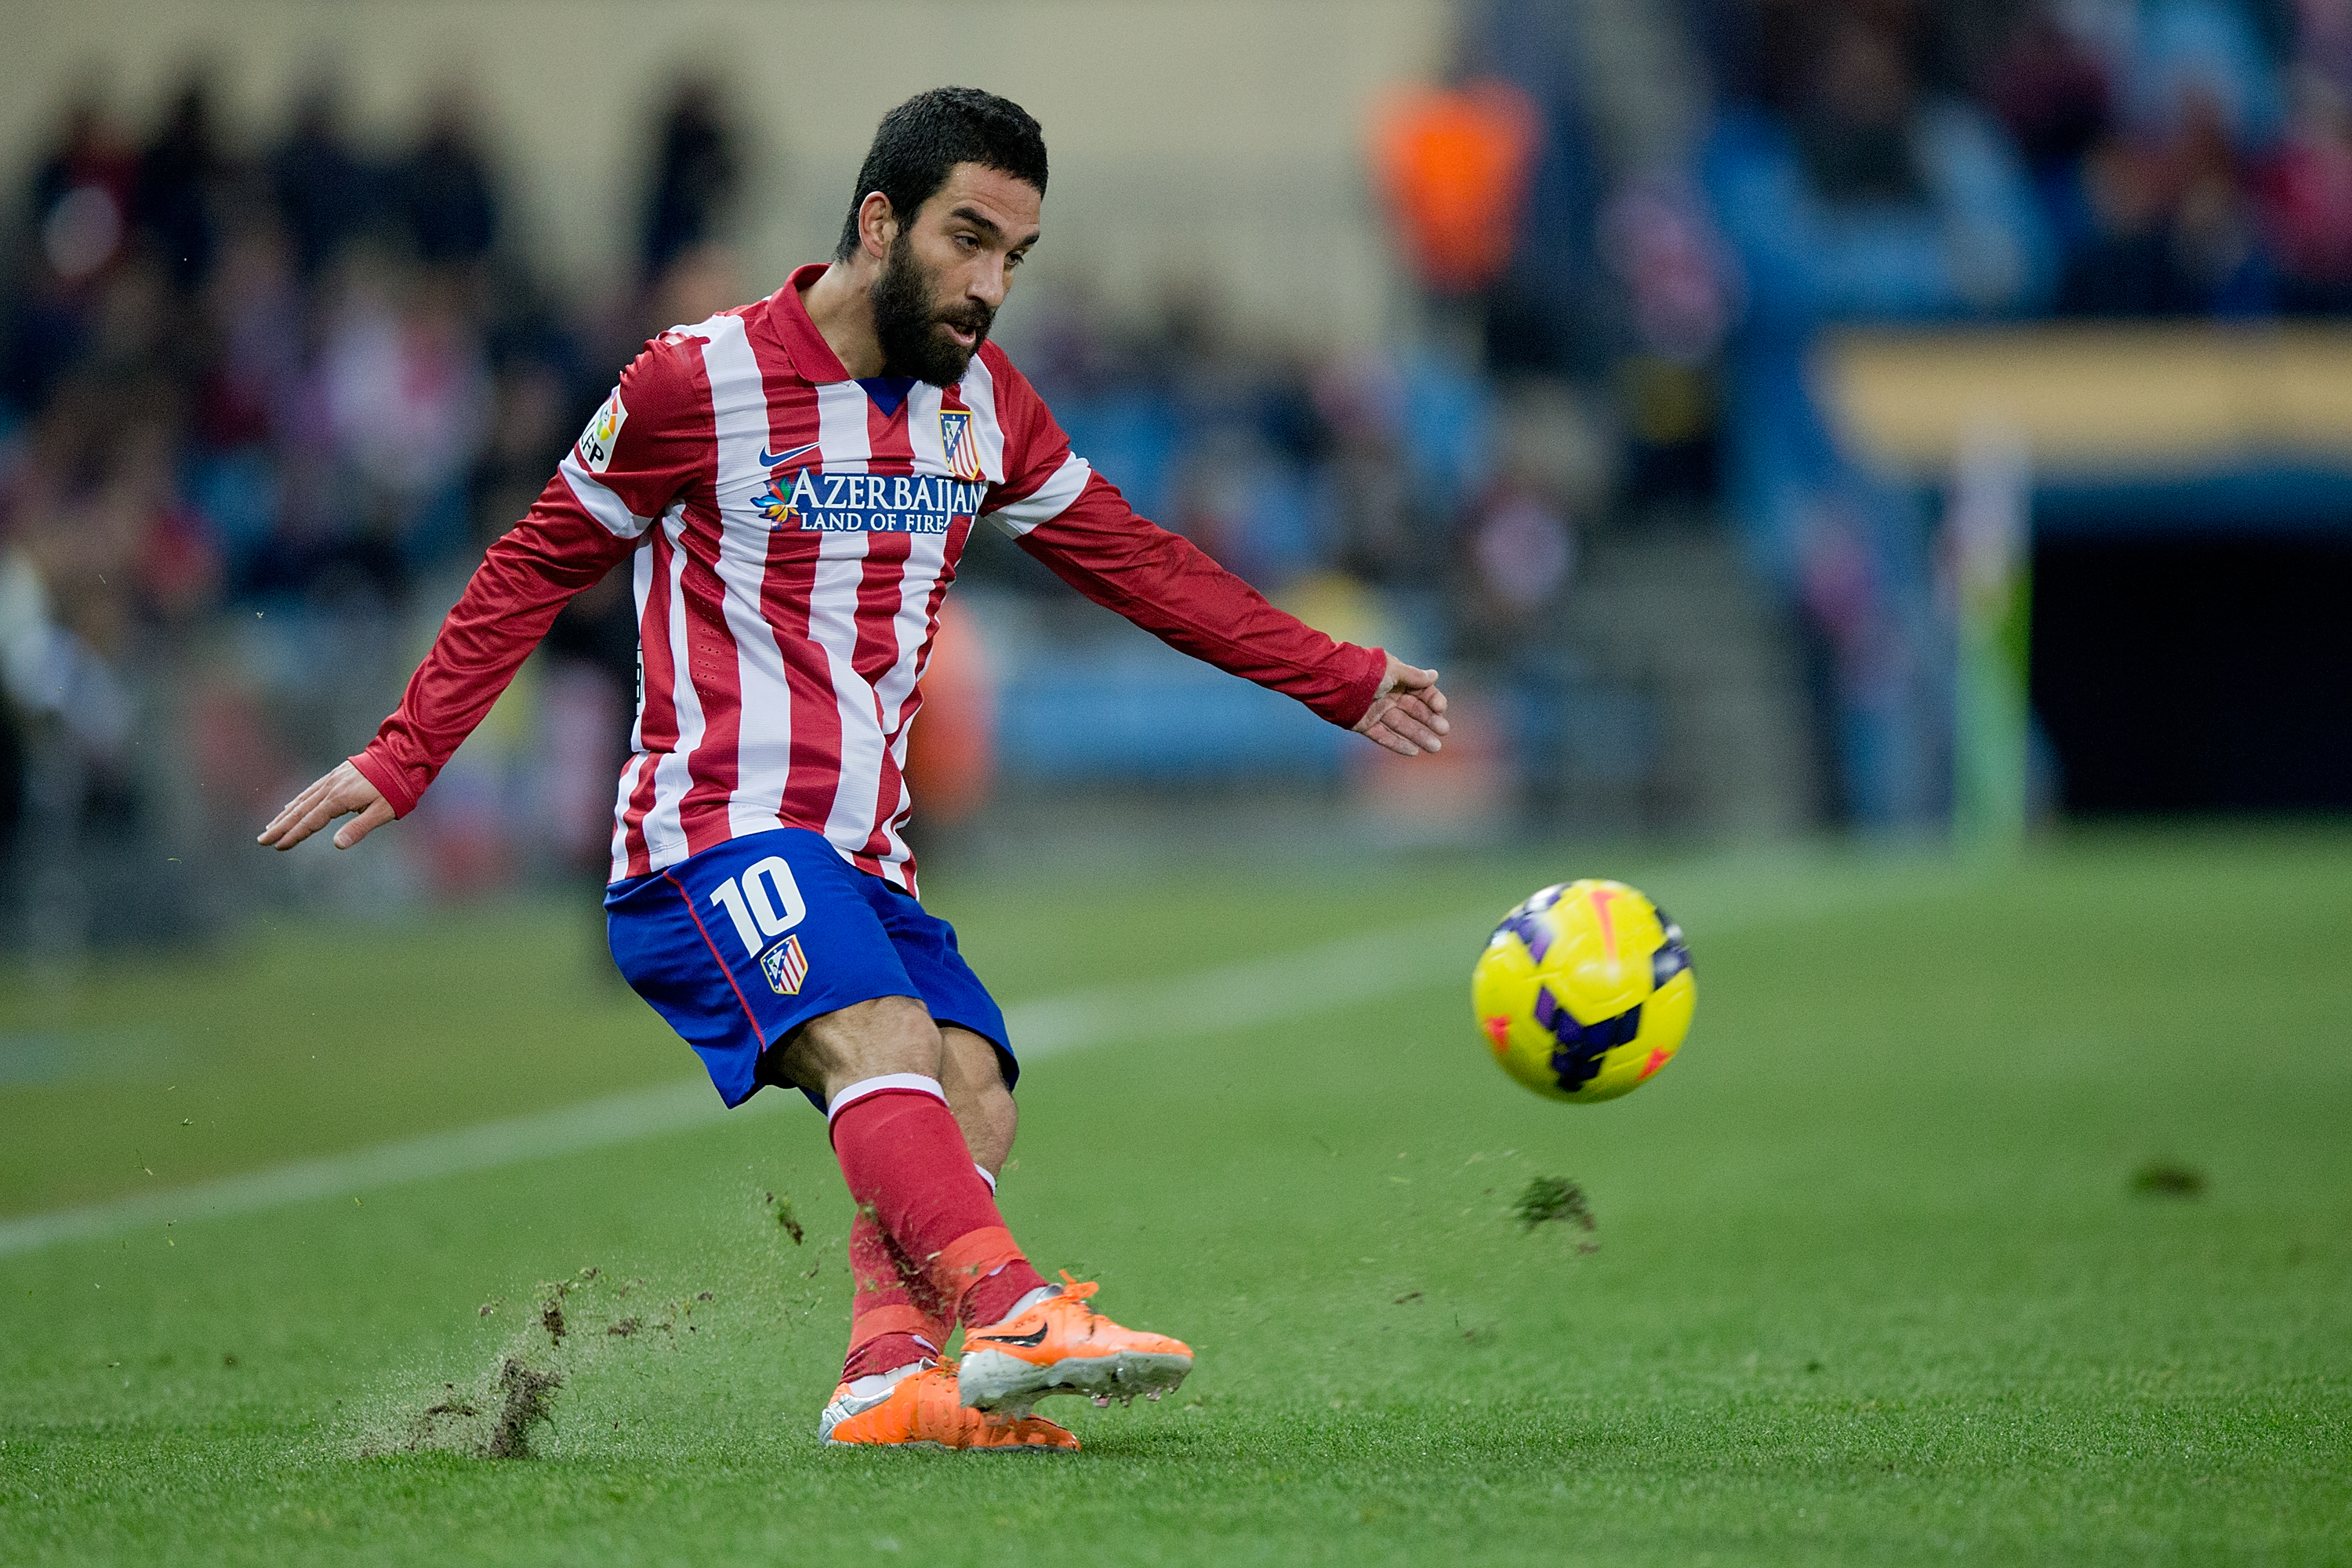 La Liga star's agent admits secret transfer talks and Manchester United bid